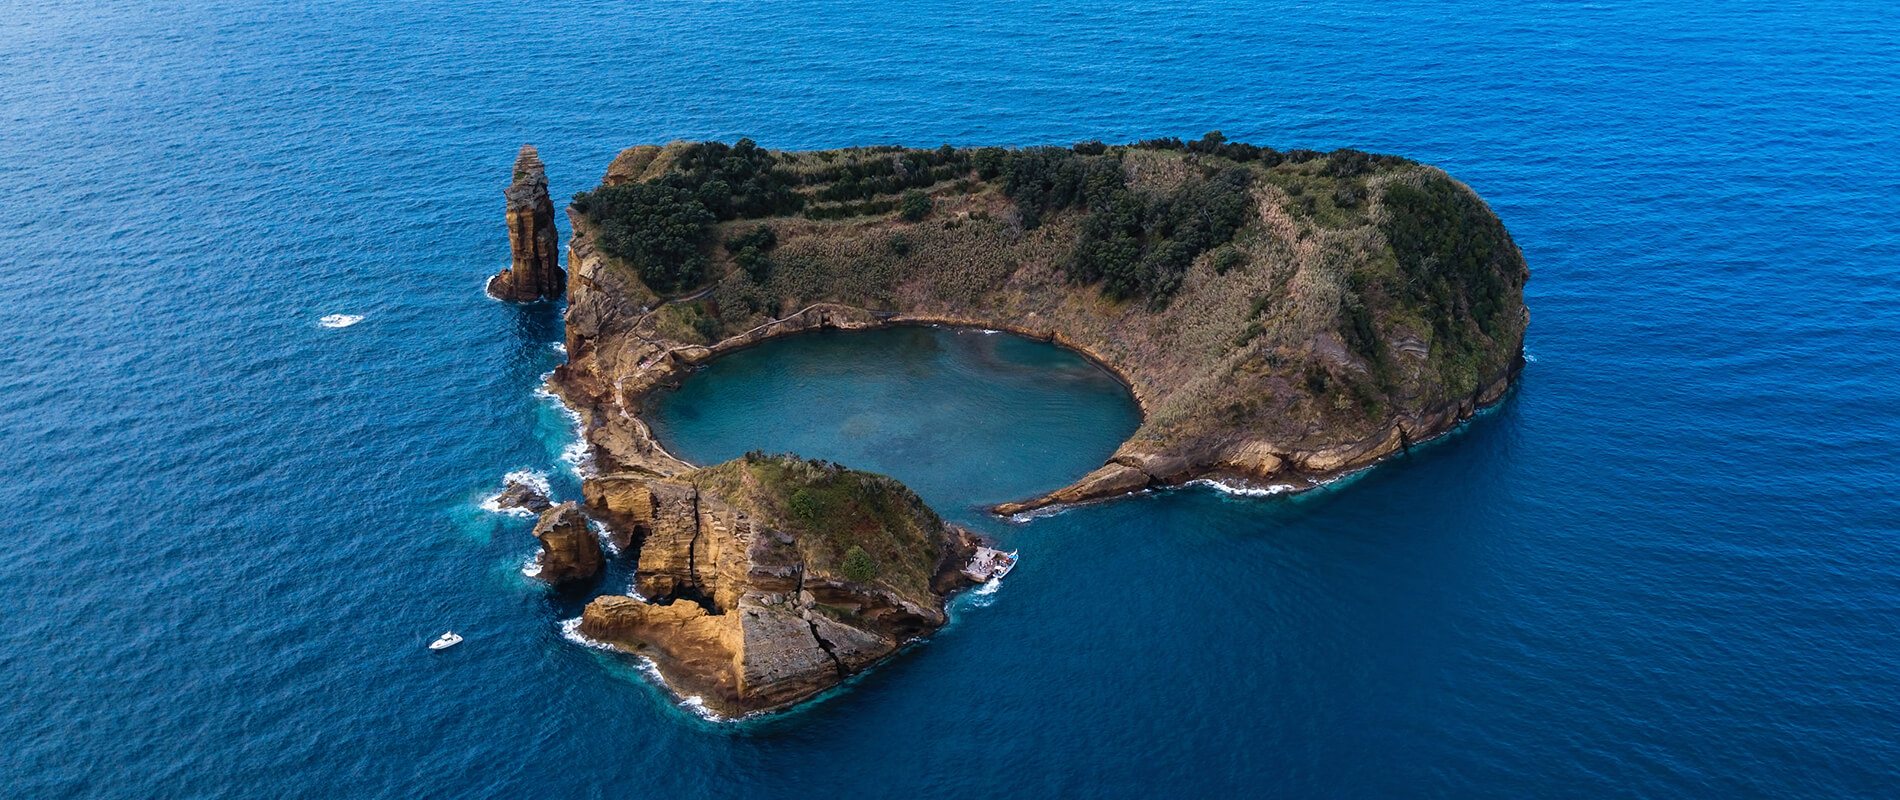 Ilhéu de Vila Franca do Campo, the enchanting islet of the Azores archipelago